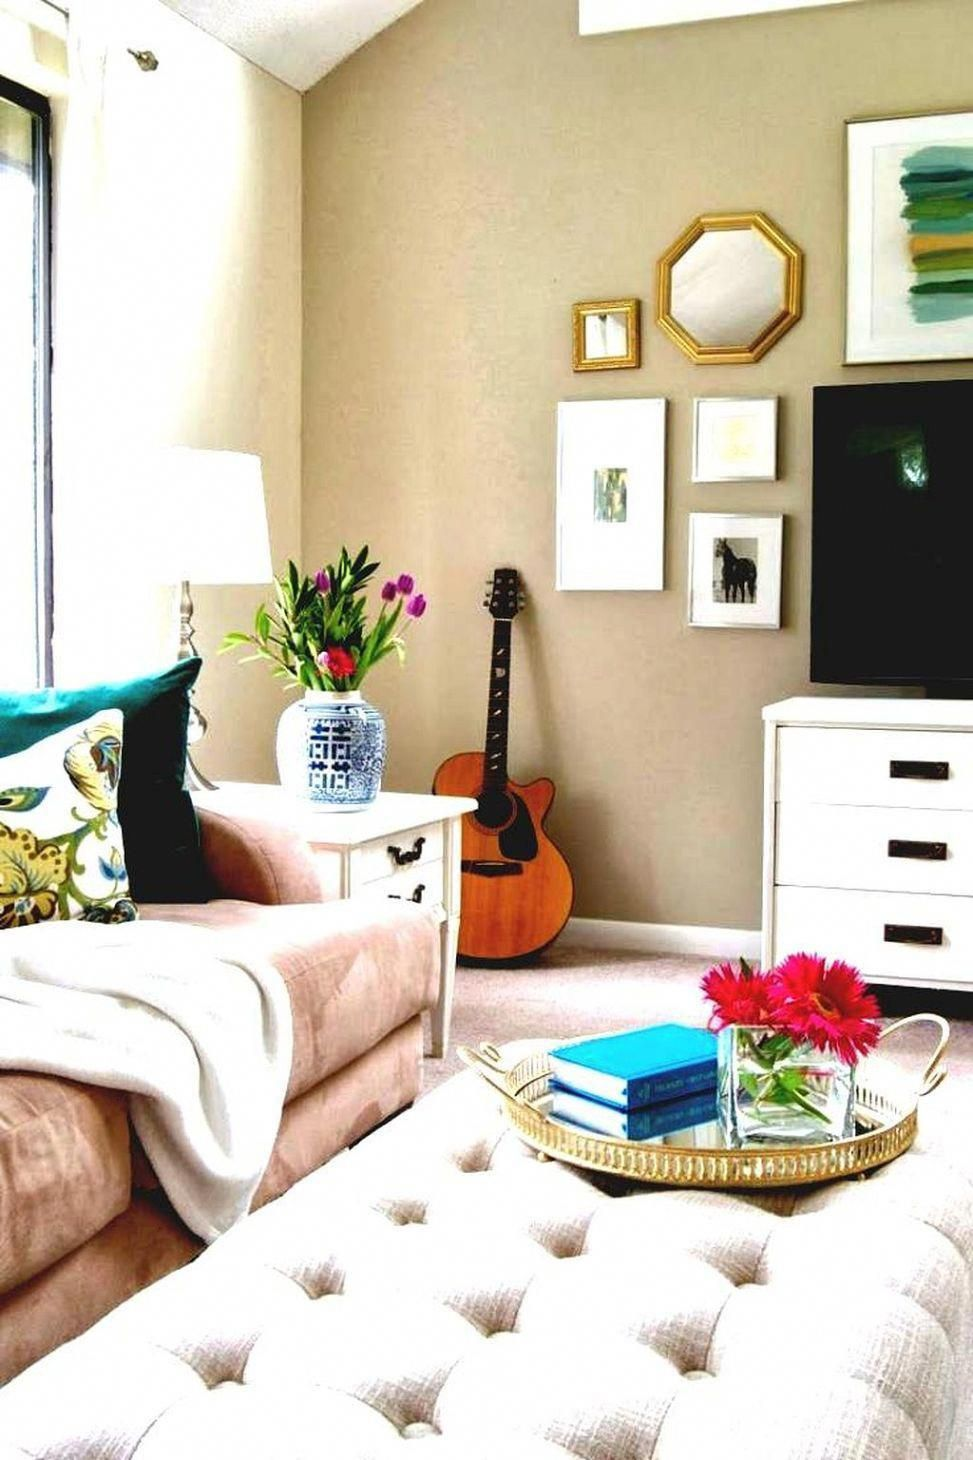 apartment living room decorating ideas on a budget 33